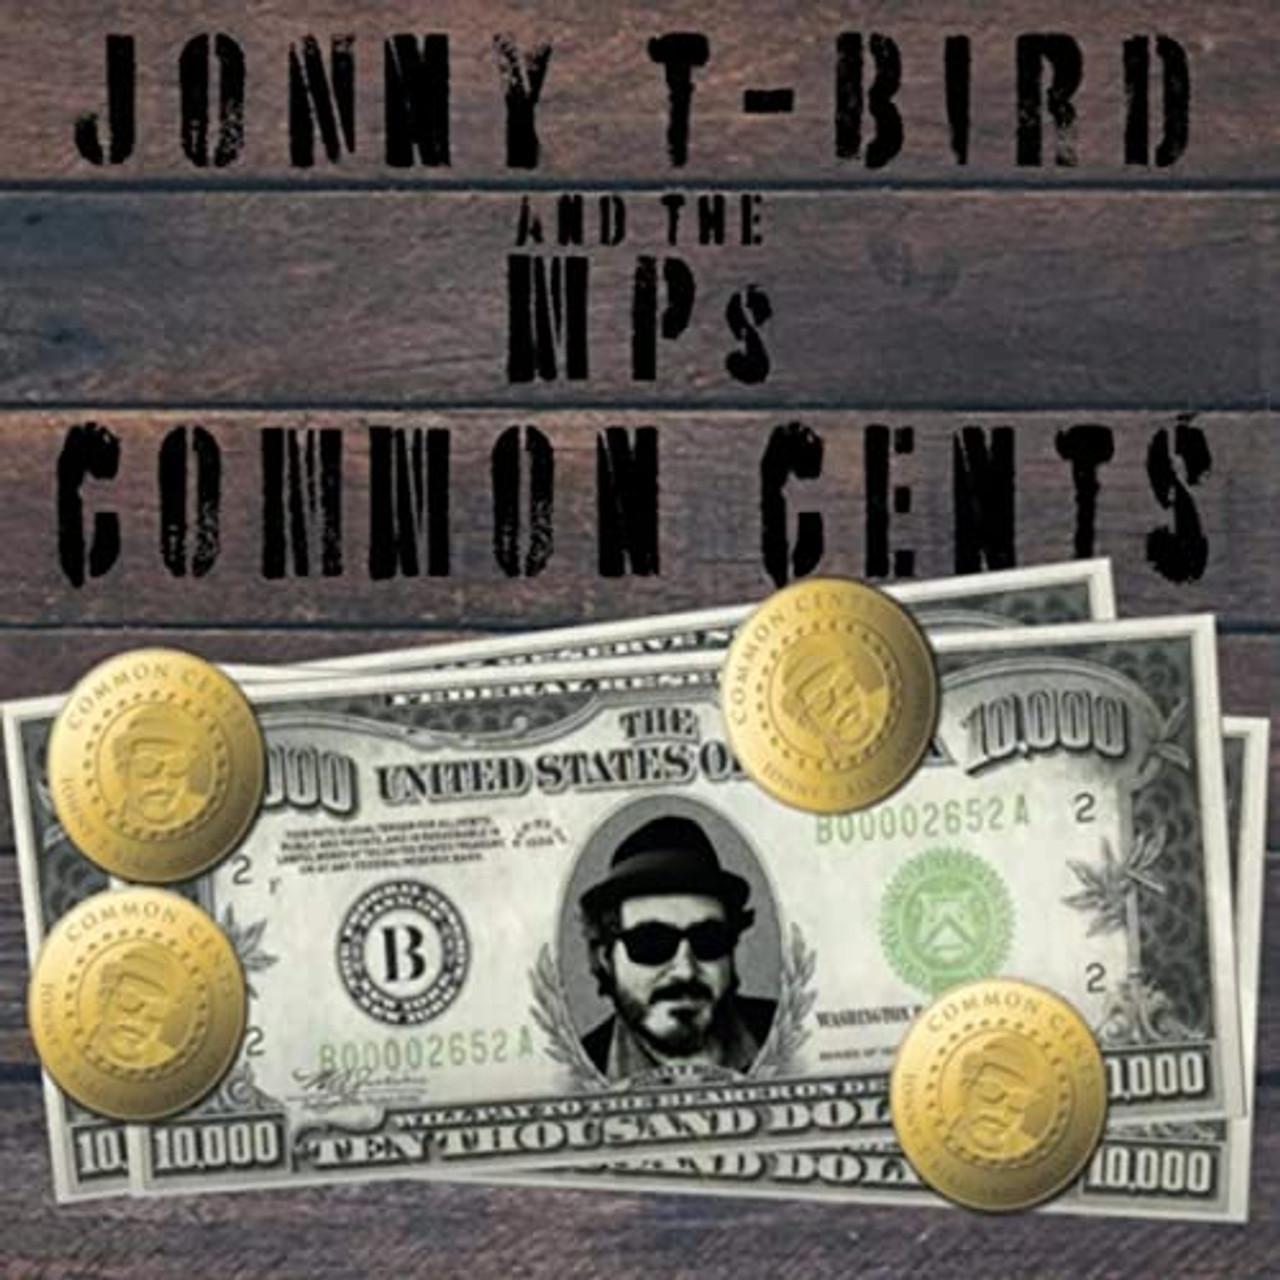 JOHNNY T-BIRD & THE MPS - COMMON CENTS